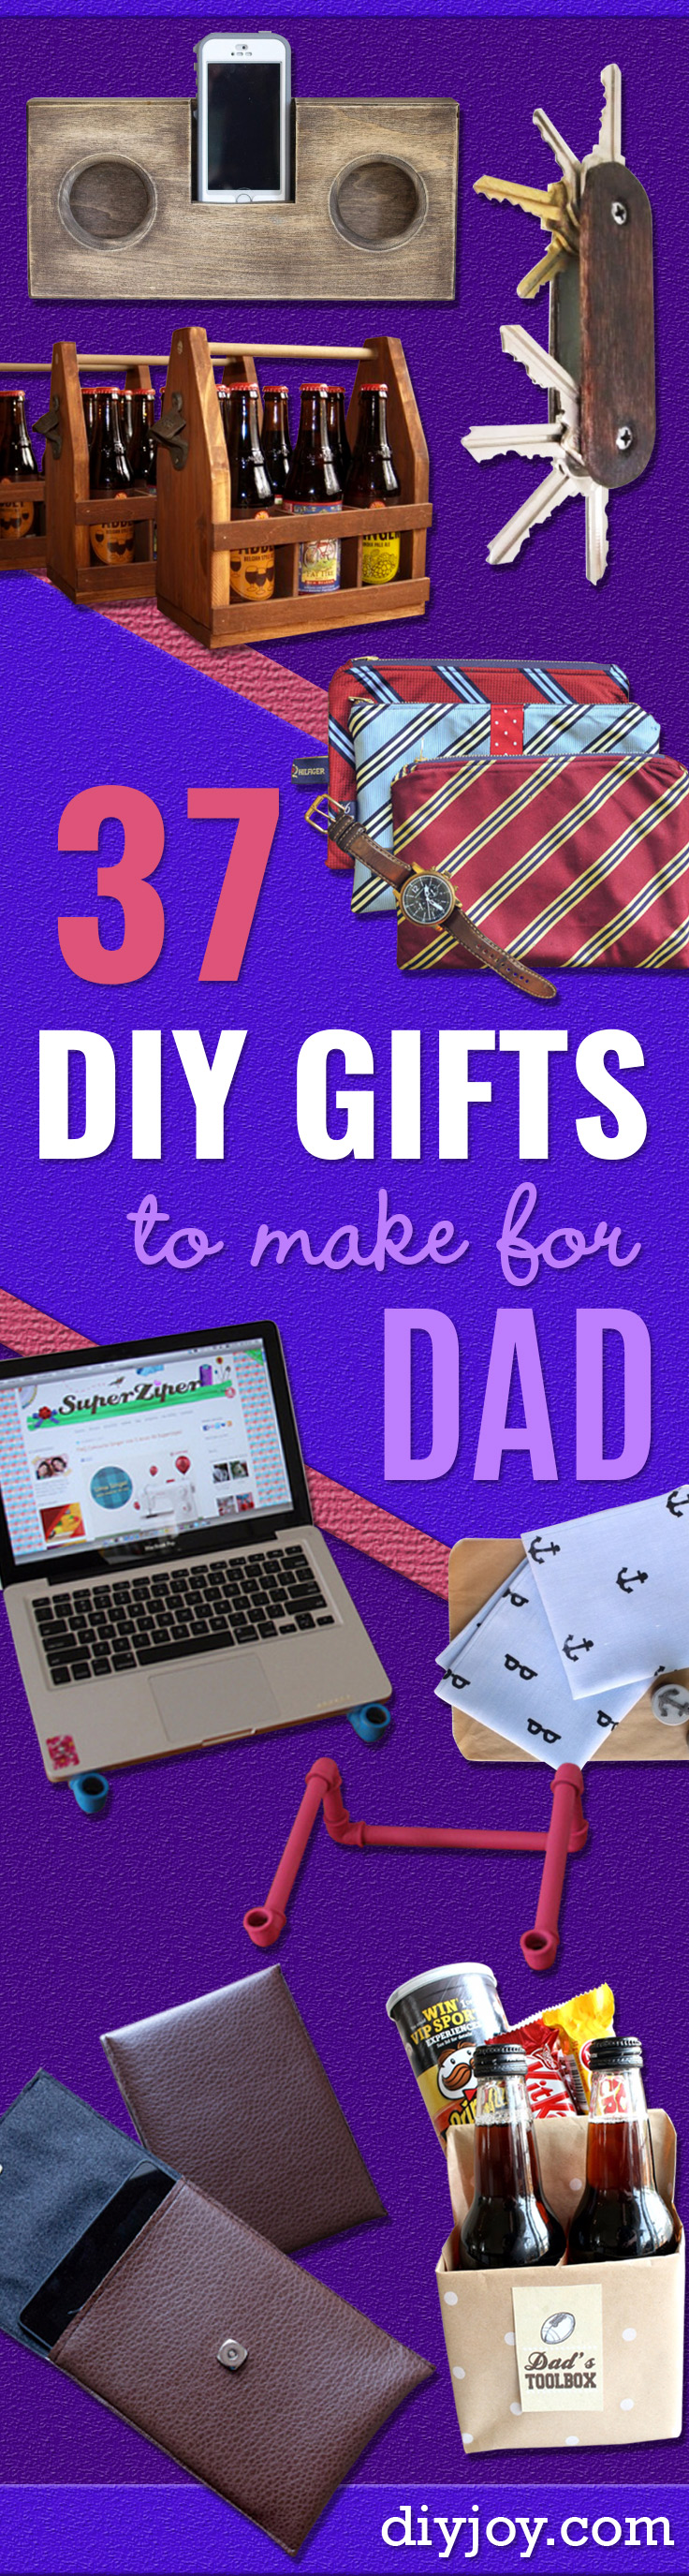 DIY Gifts Ideas for Dad - Best Craft Projects and Gift Ideas You Can Make for Your Father - Last Minute Presents for Birthday and Christmas - Creative Photo Projects, Gift Card Holders, Gift Baskets and Thoughtful Things to Give Fathers and Dads